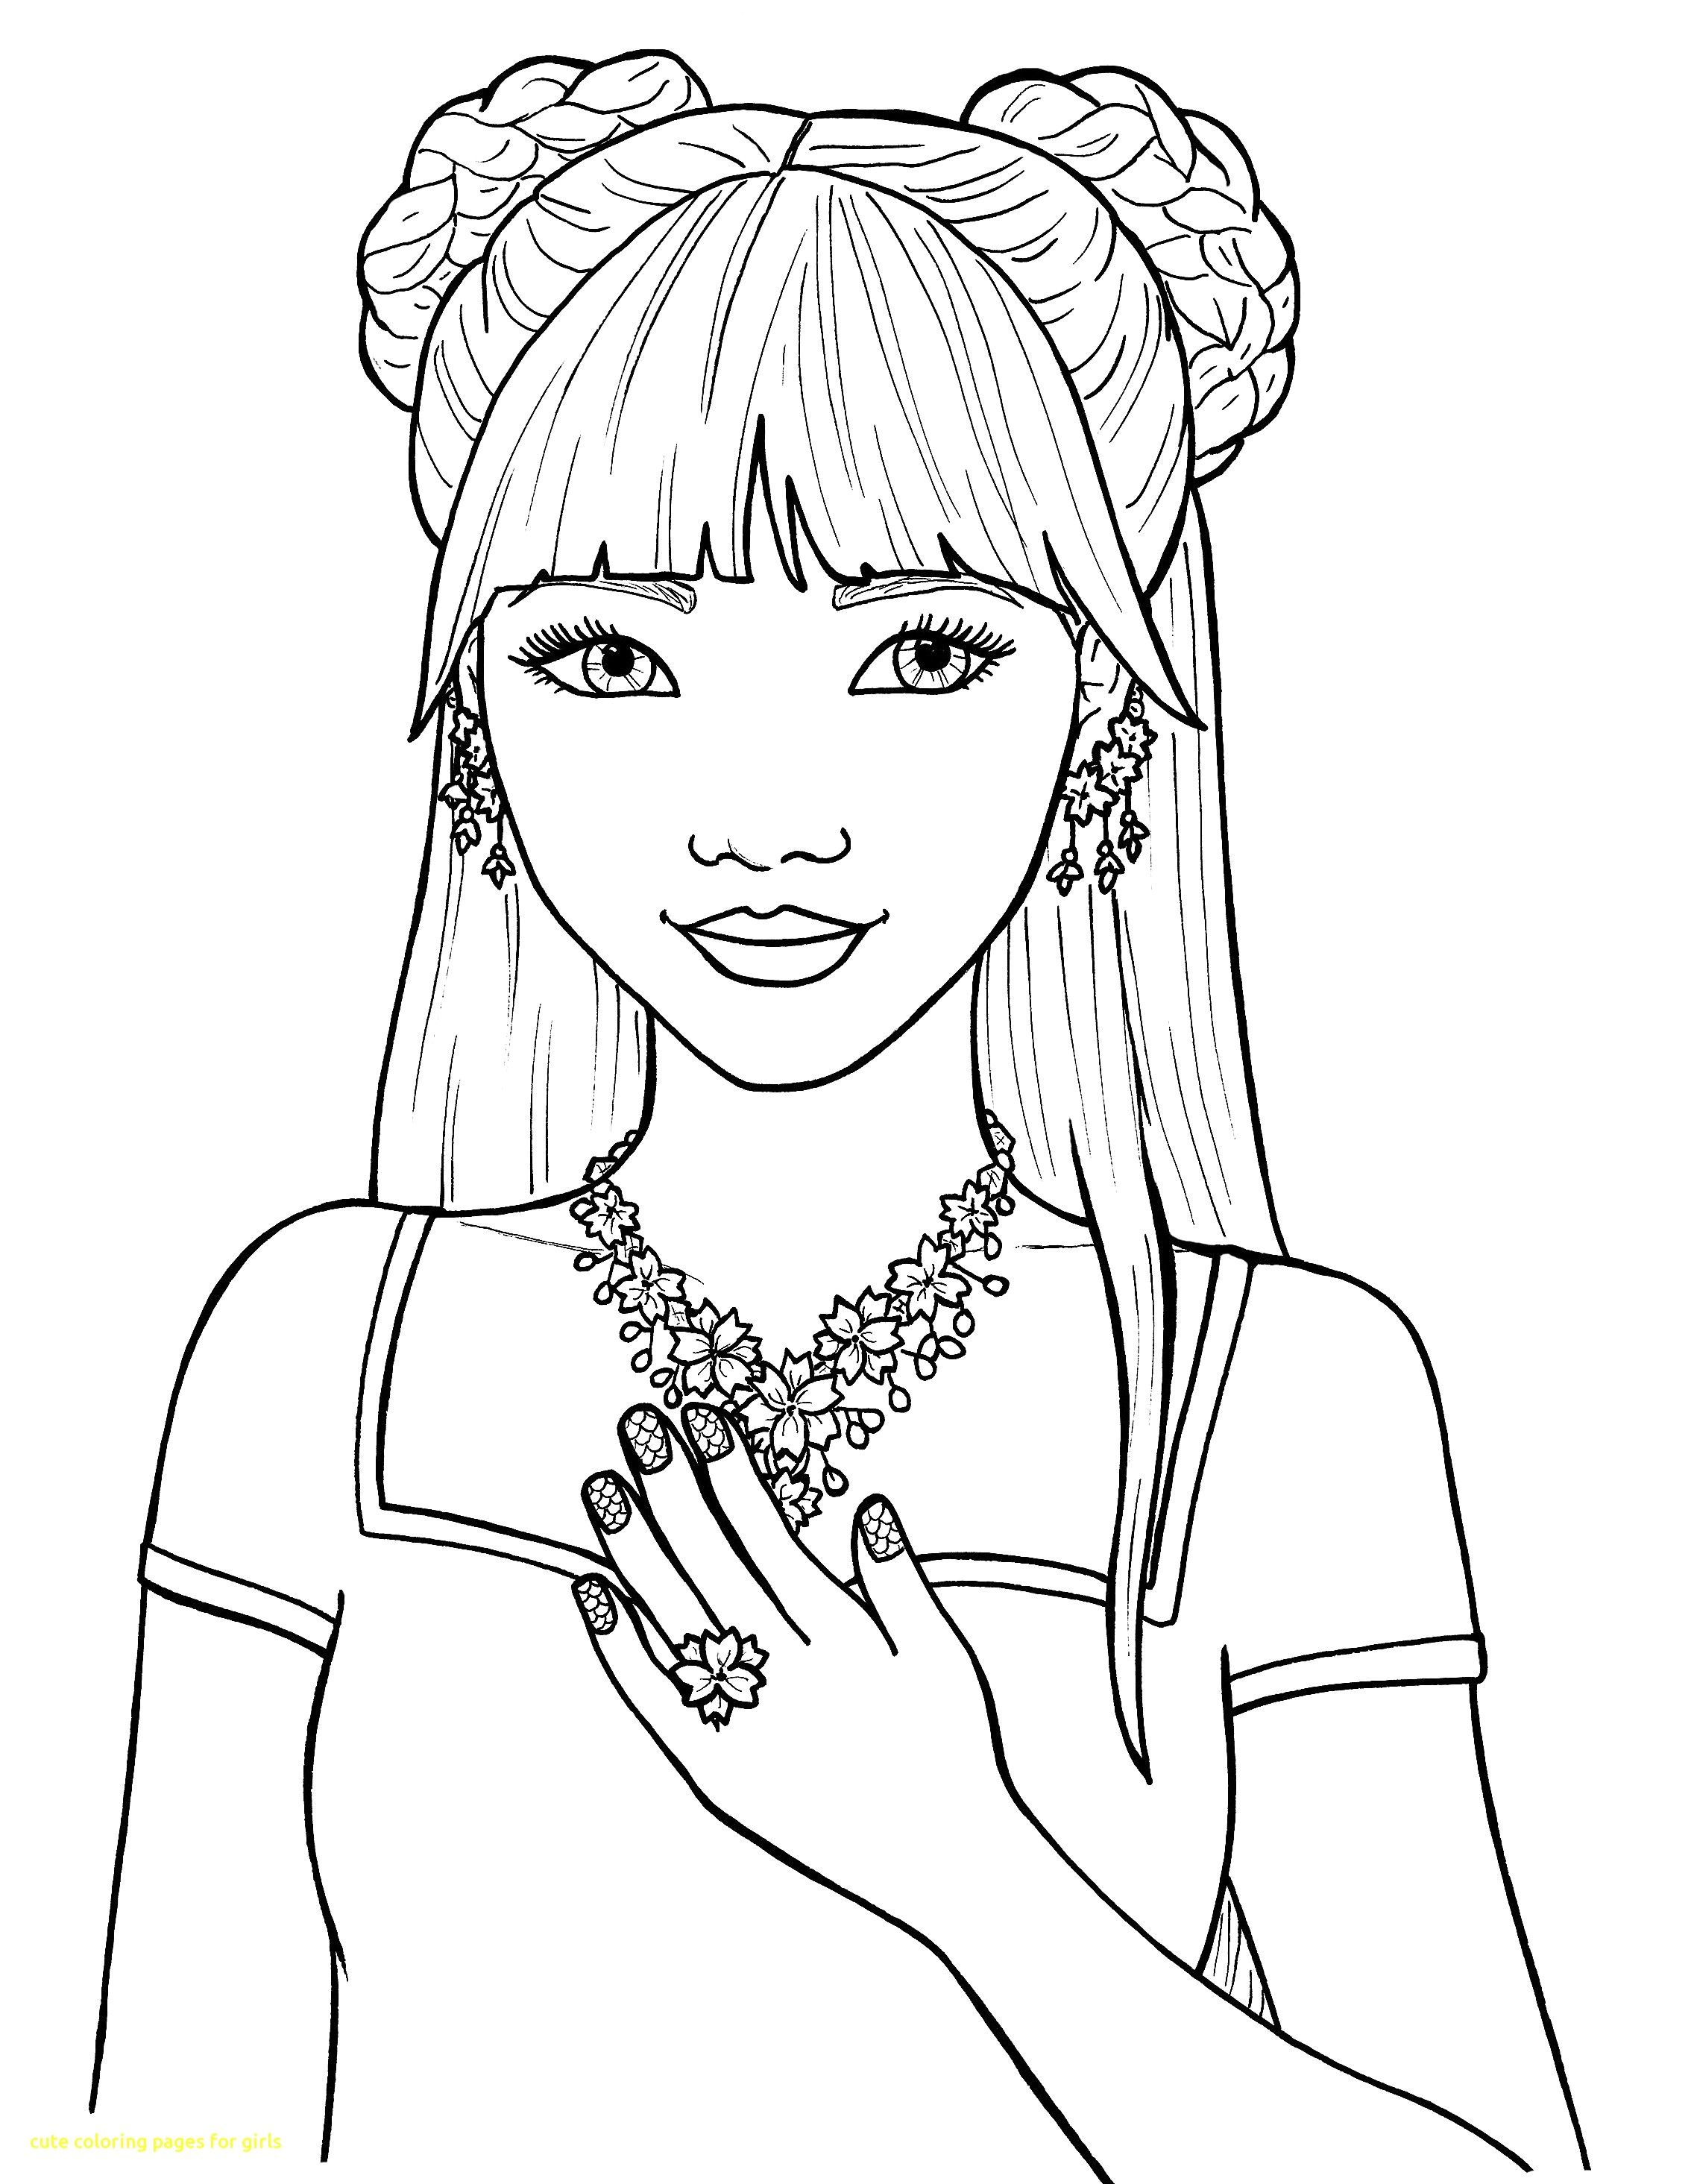 Girl body parts coloring page - ESL worksheet by ladelmar | 2929x2272